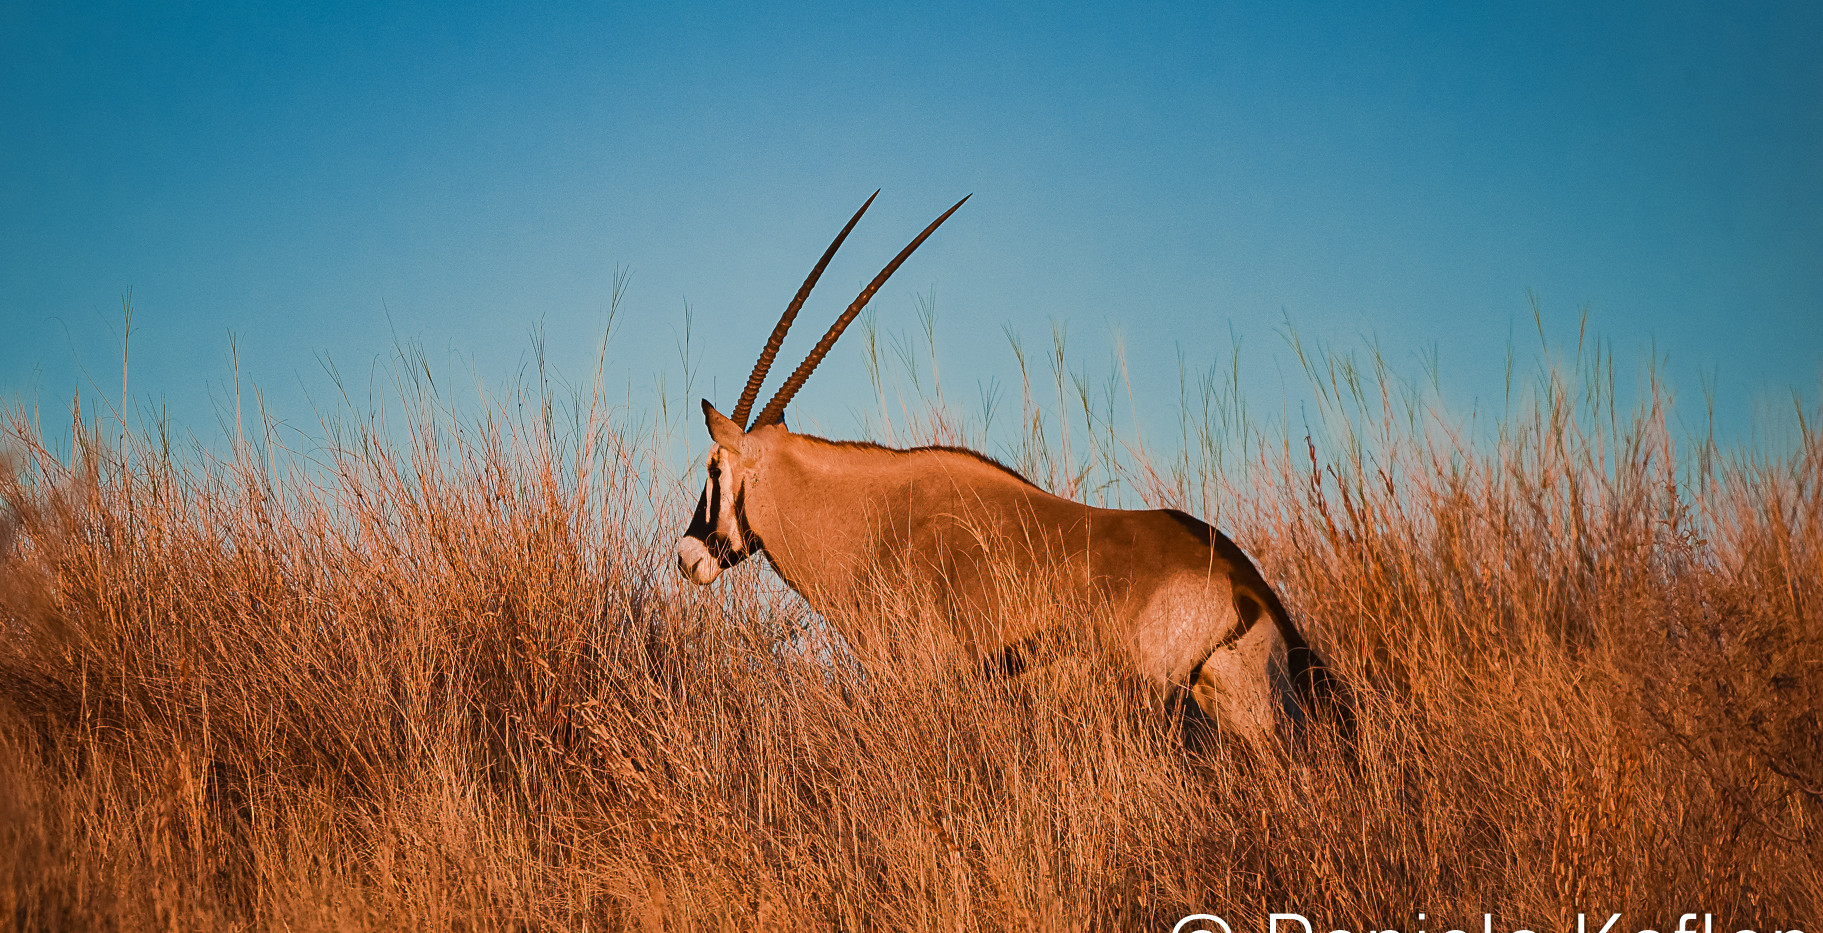 Gemsbok in t he long grass